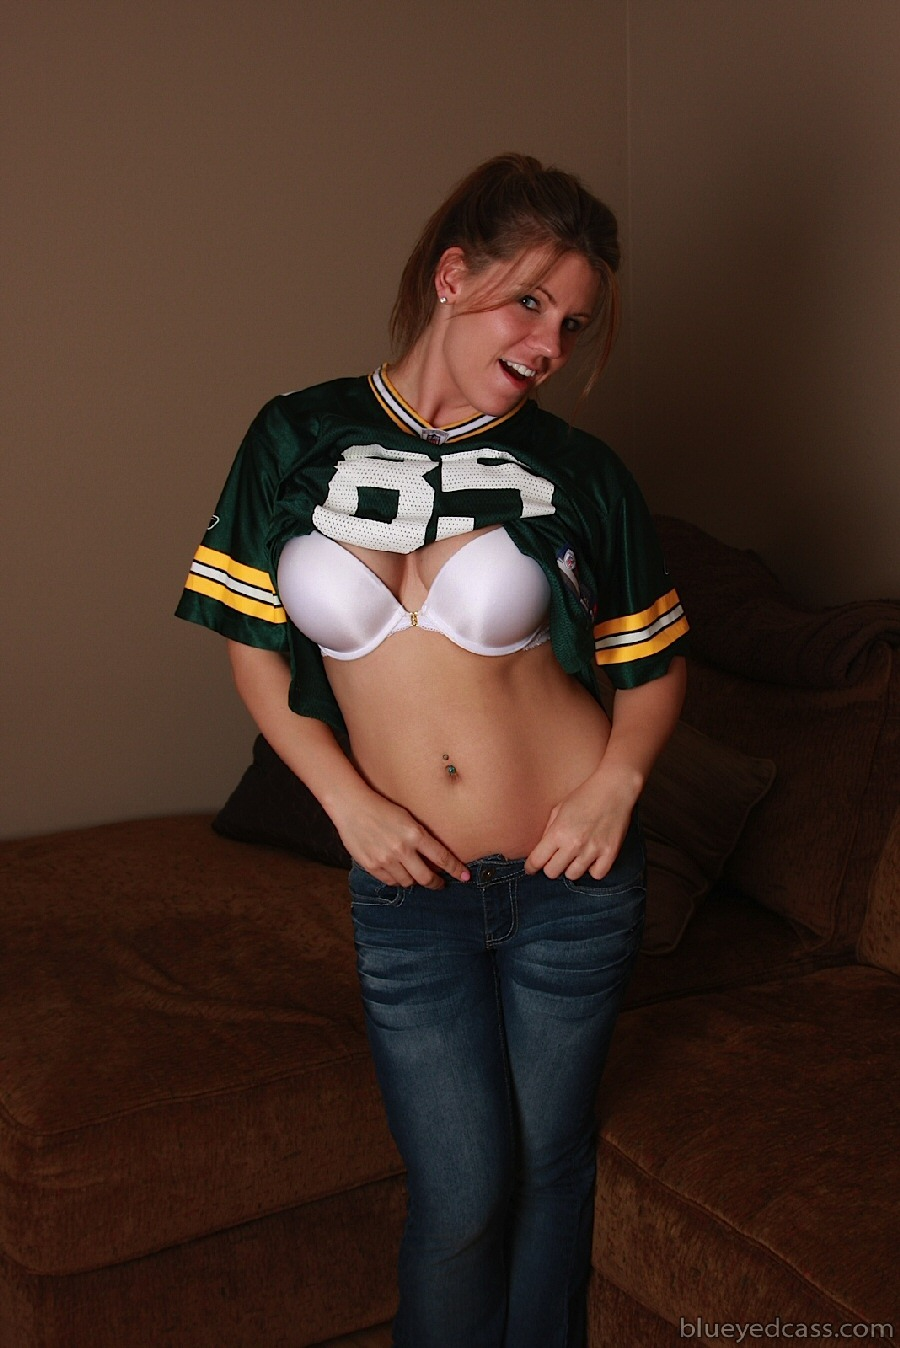 Are girl naked football jersey can read